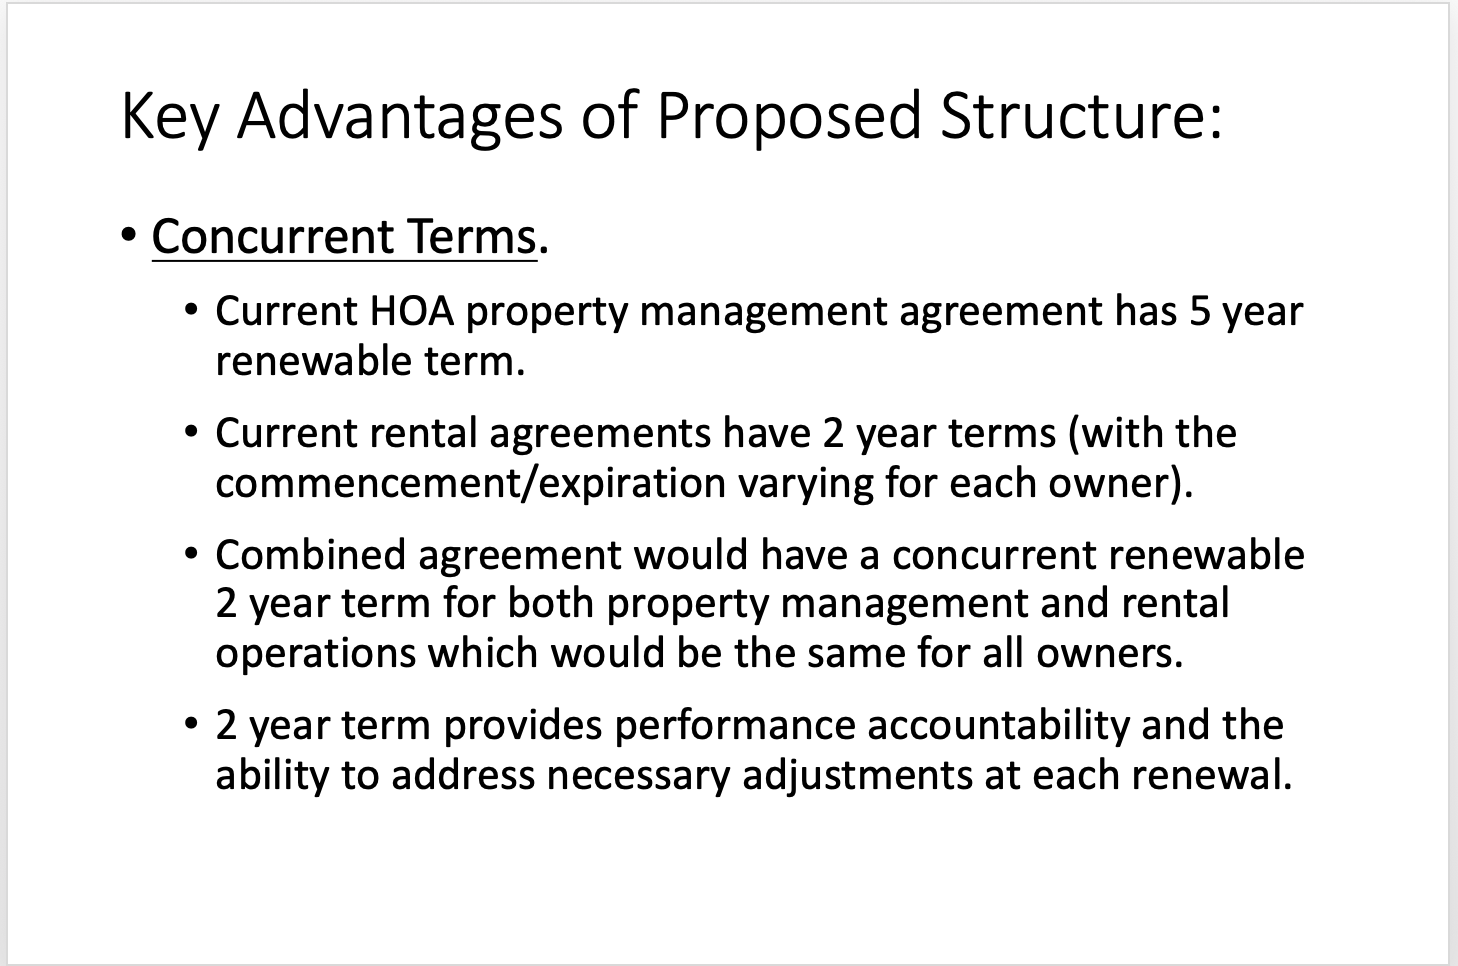 2-year term allows for discussion Can work with the management to address problems Right now Snowbird can terminate the agreement with an individual owner if there are problems If everything is going well there is no reason to change